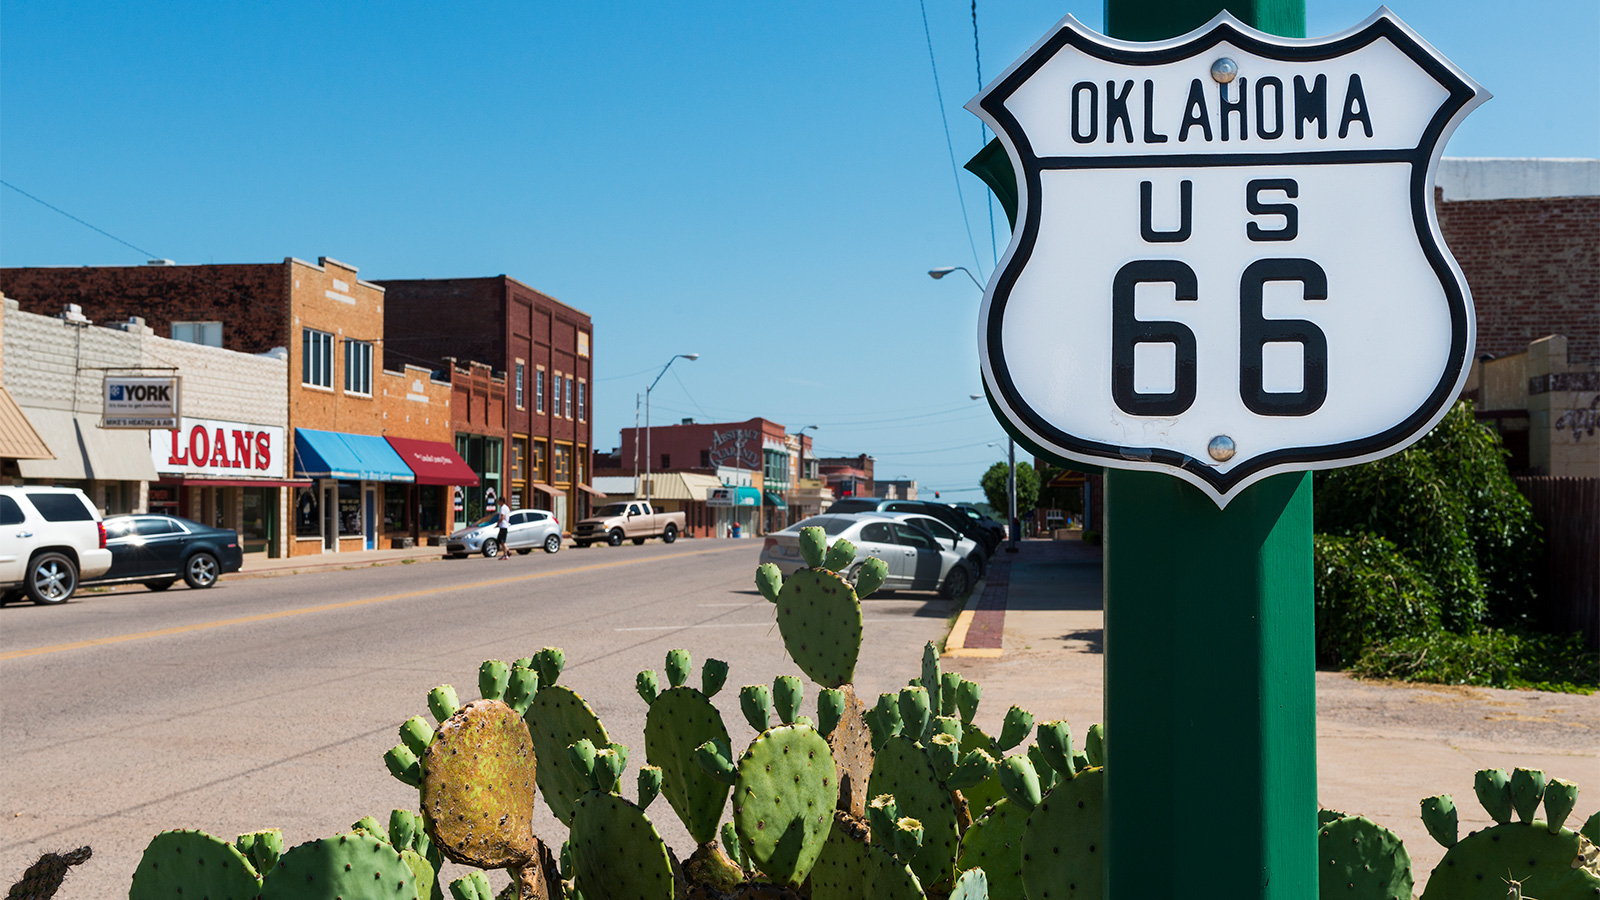 Along the historic Route 66 in the State of Oklahoma